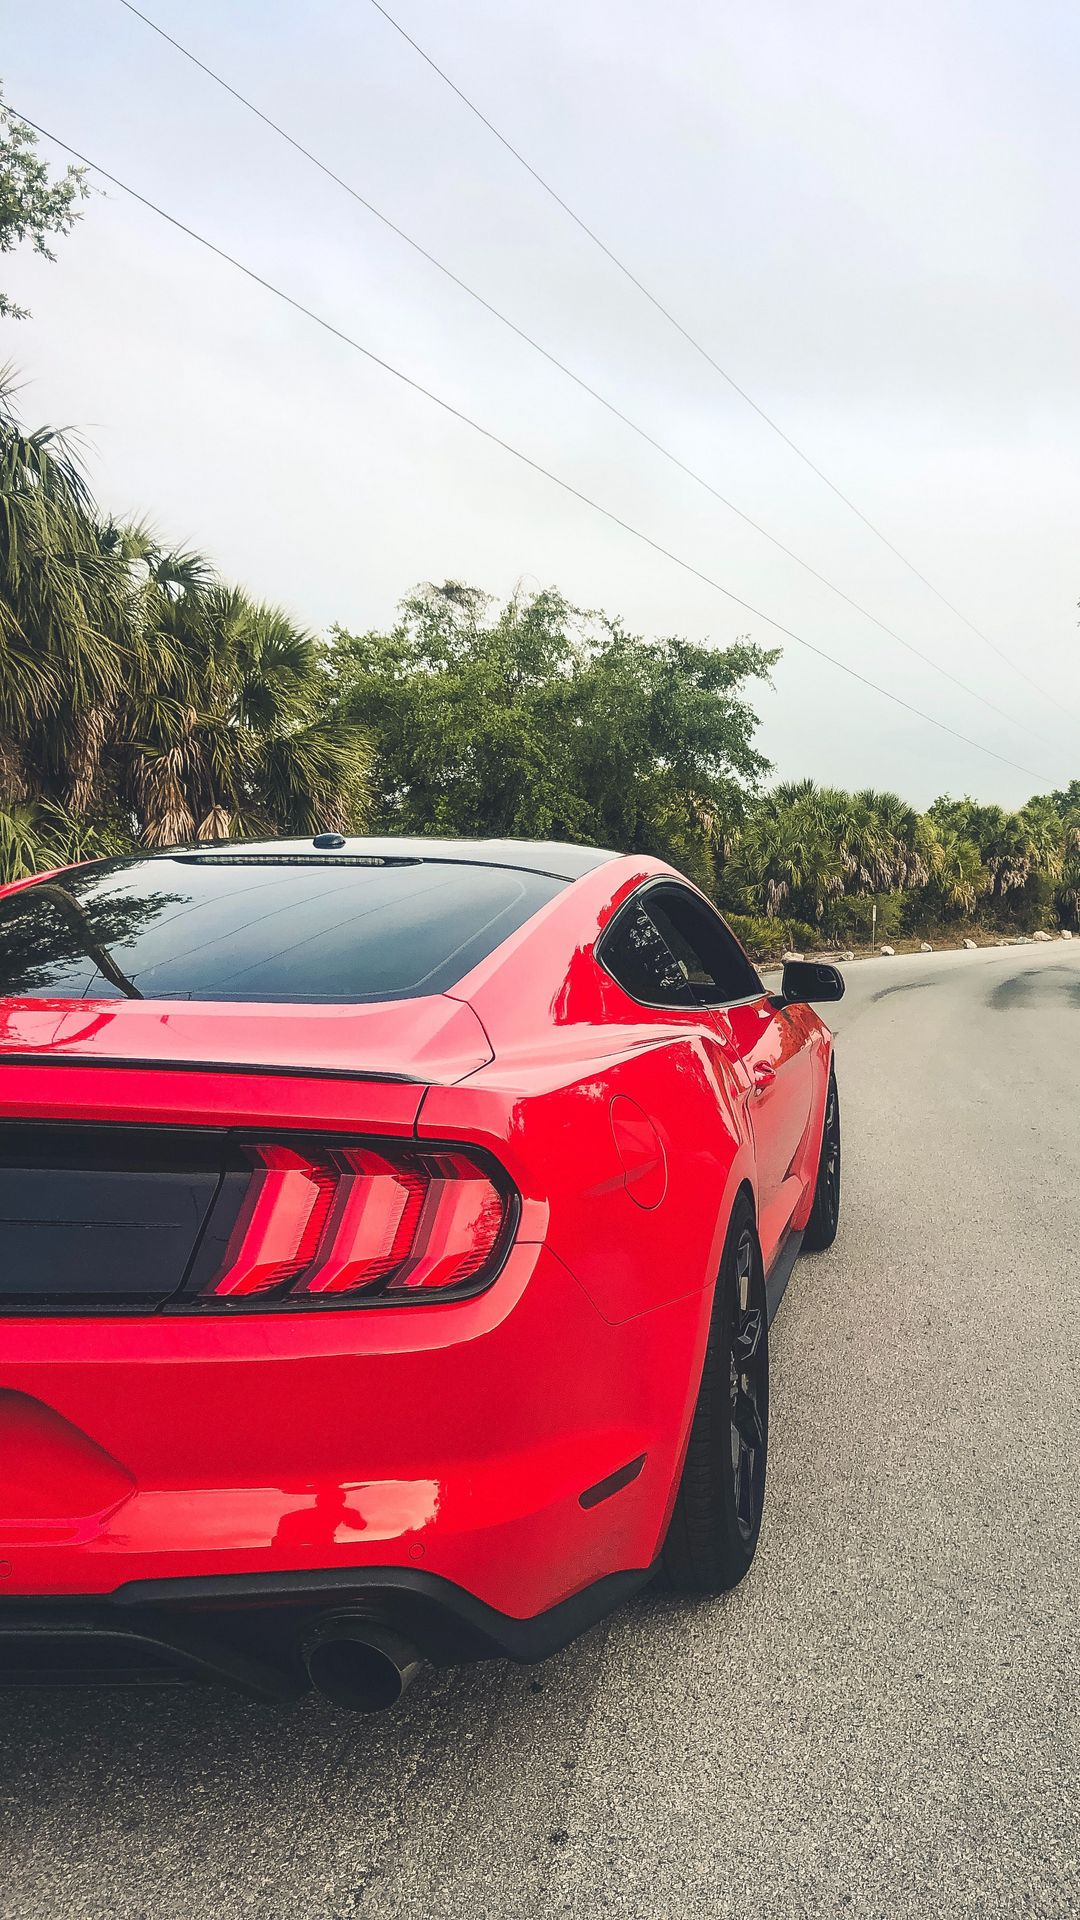 Red Ford Mustang Wallpapers Free Download